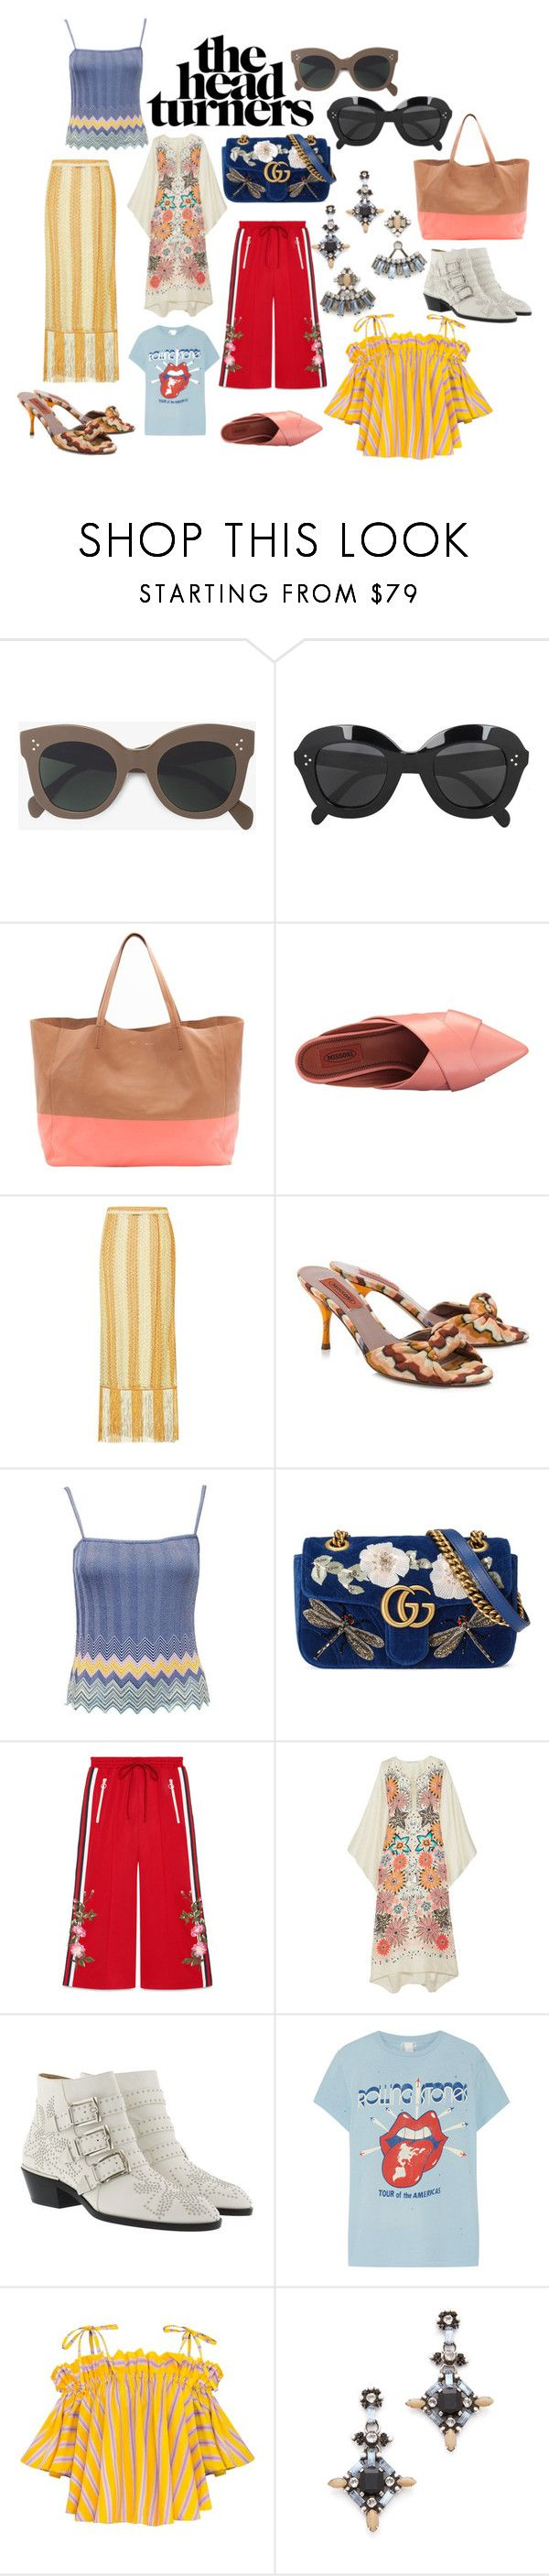 The Head Turners by hatz7 on Polyvore featuring Missoni, MadeWorn, Missoni Mare, Gucci, Chloé, CÉLINE and DANNIJO